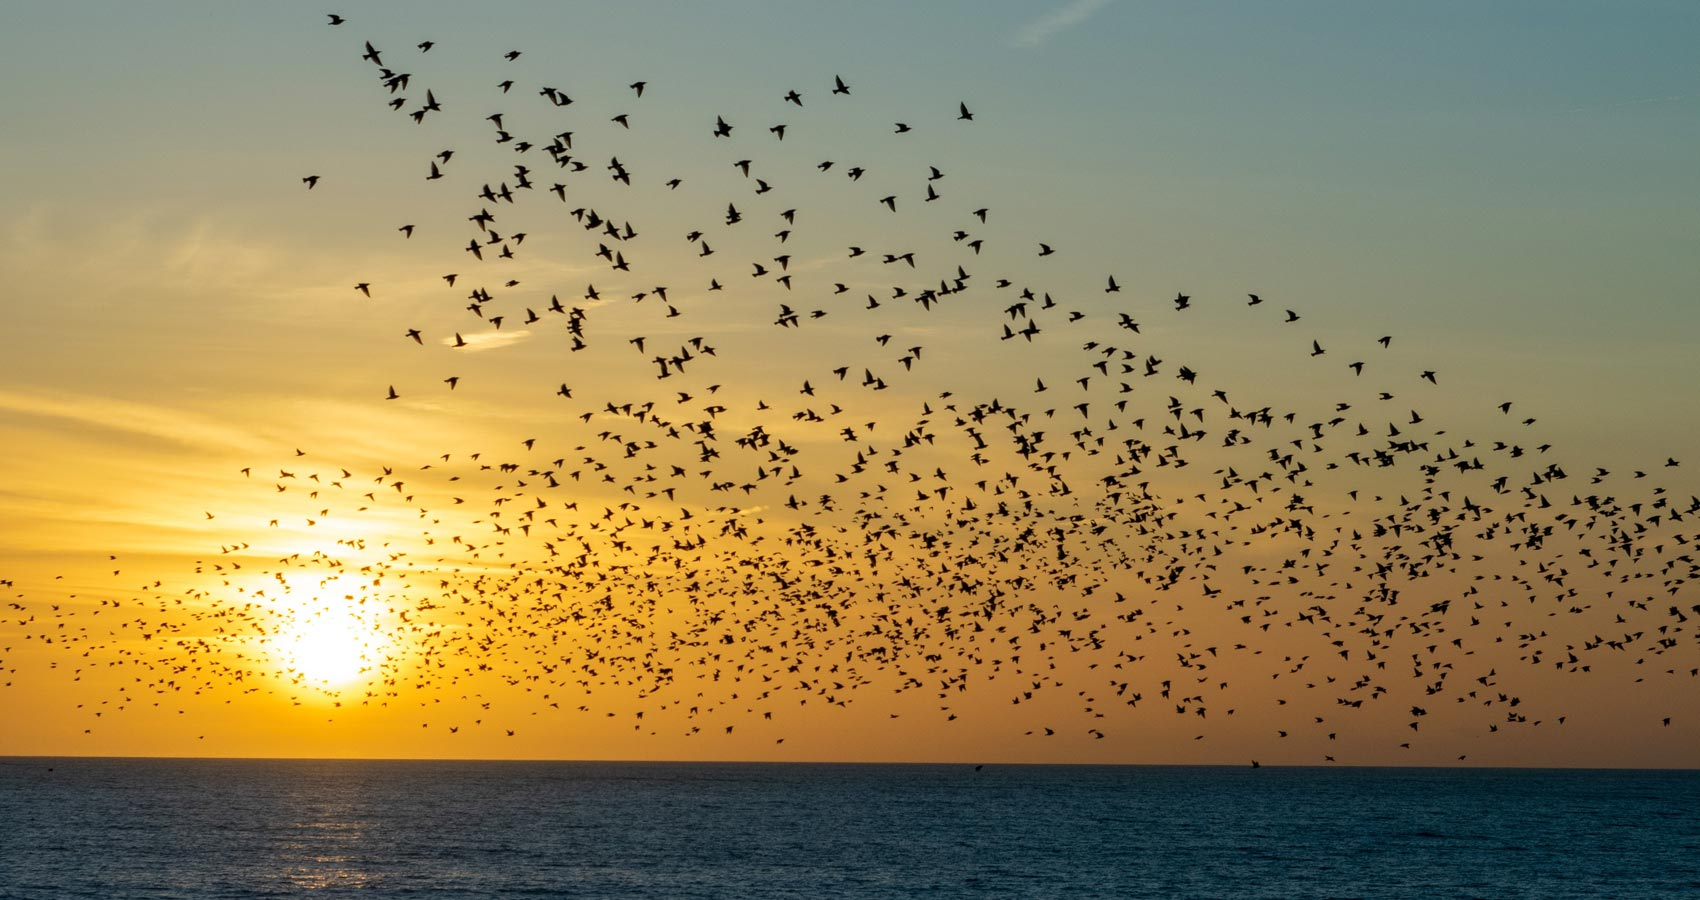 Murmuration, a poem by Paul Thwaites at Spillwords.com